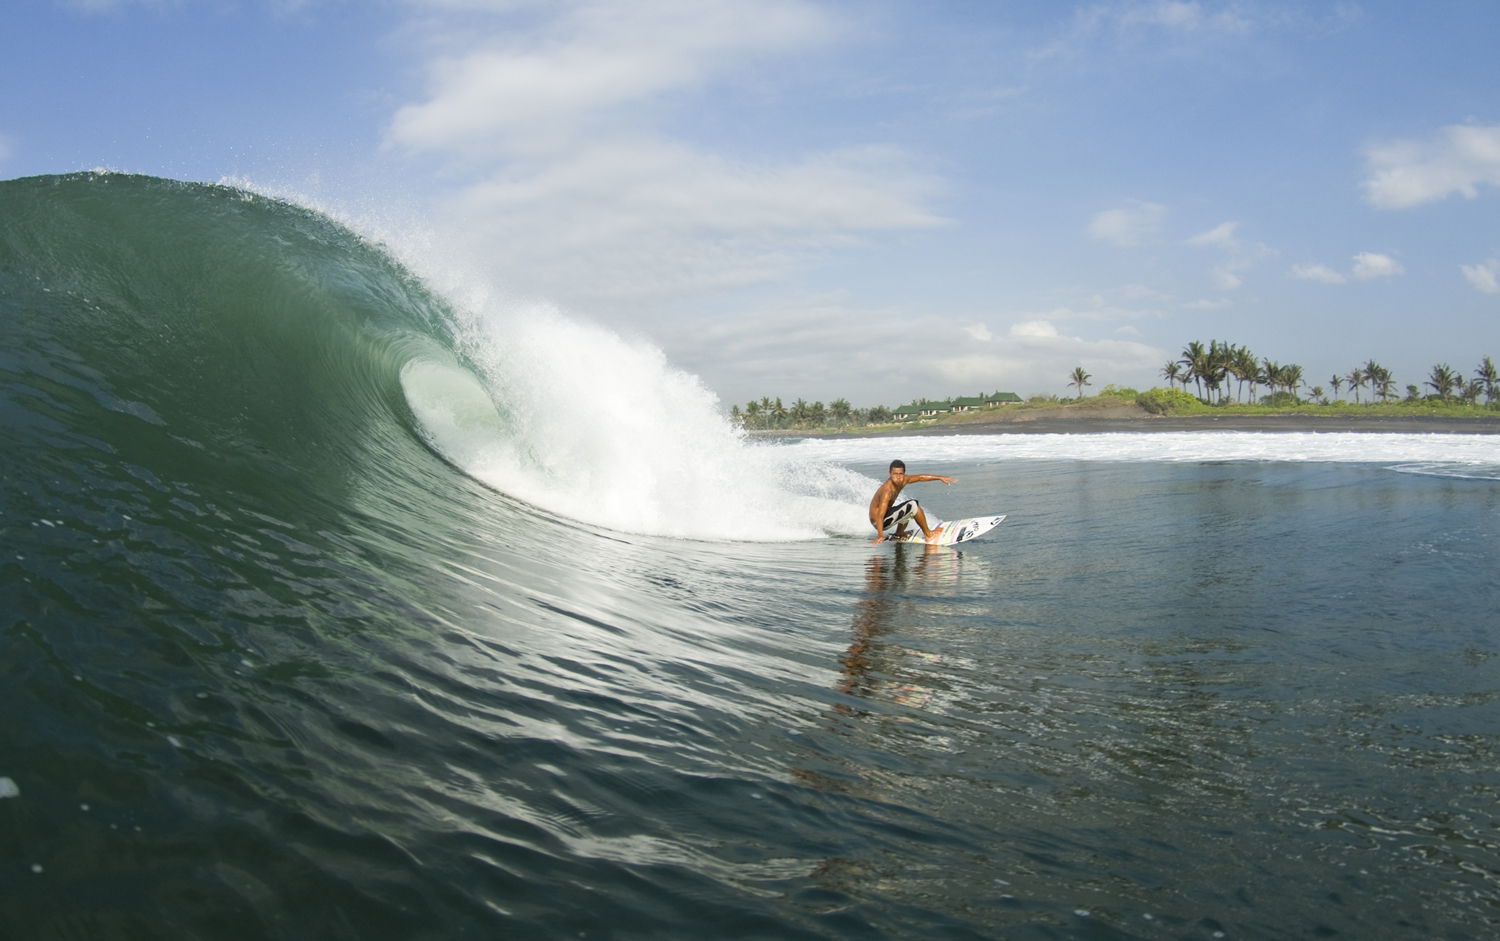 Everything you need to know about the rippable righthand Bali break, Keramas.  - Surfline